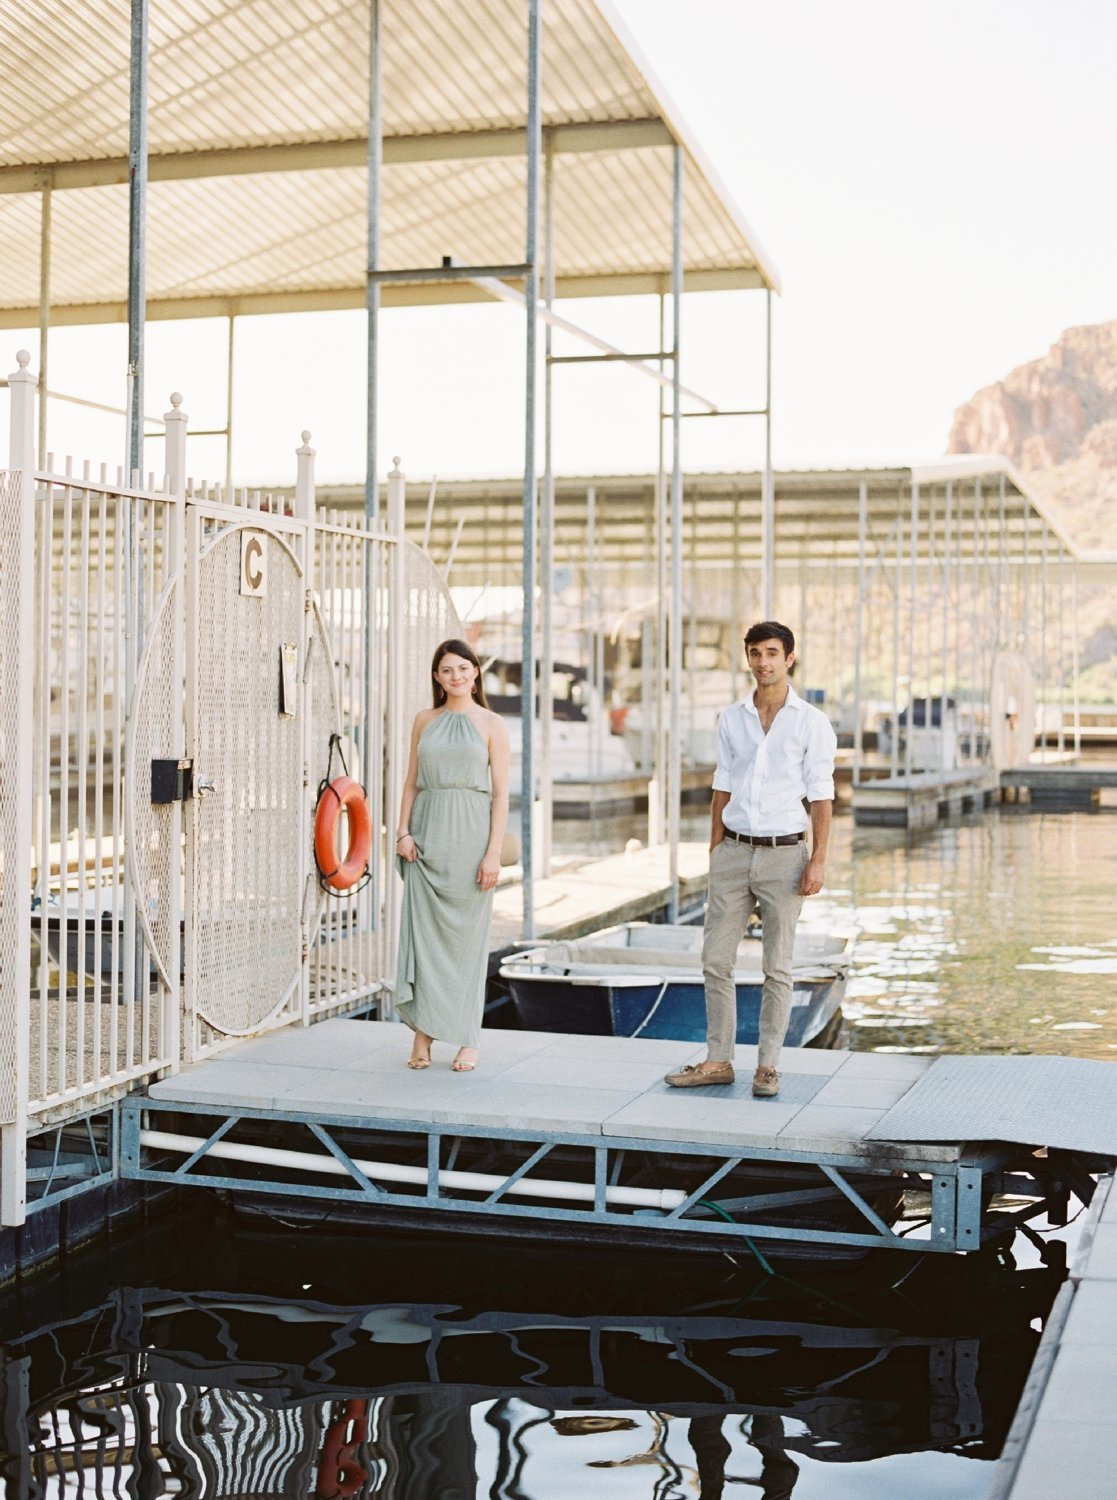 lake-arizona-engagement-session-wedding-photographer-Rachael-Koscica_0583